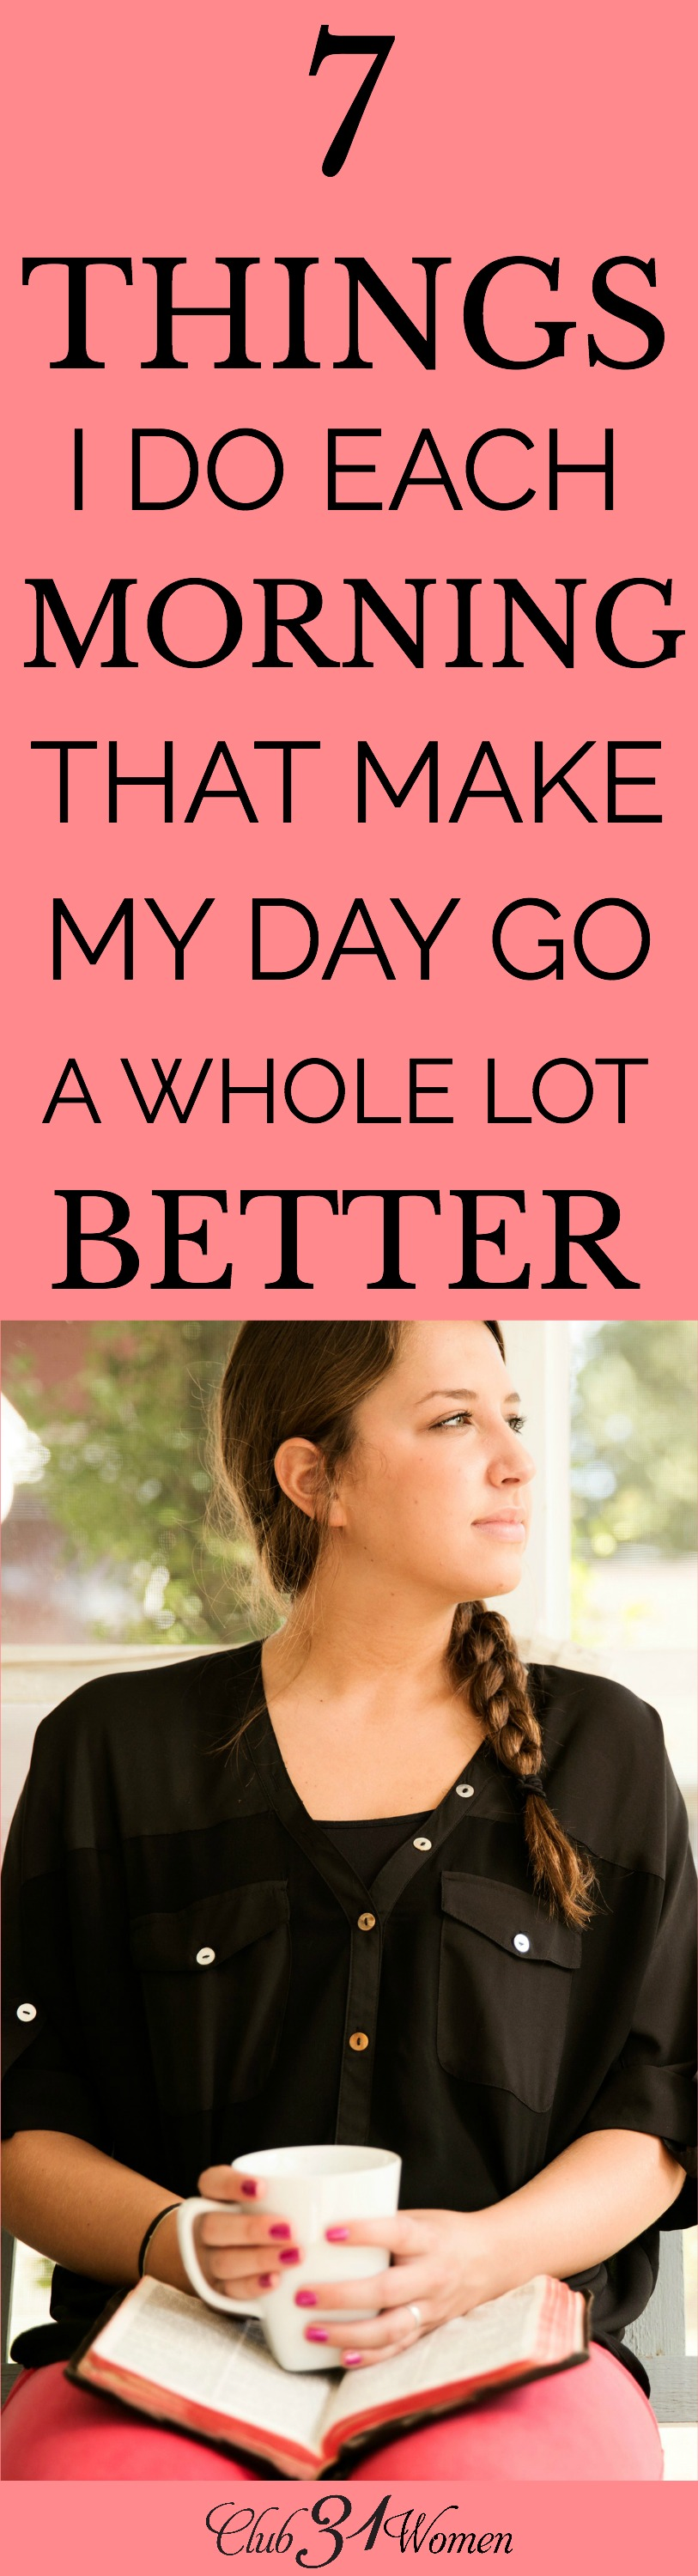 Mornings can have a significant impact on our entire day. Being intentional makes a big difference! Here are 7 basic things I try to do every morning. via @Club31Women